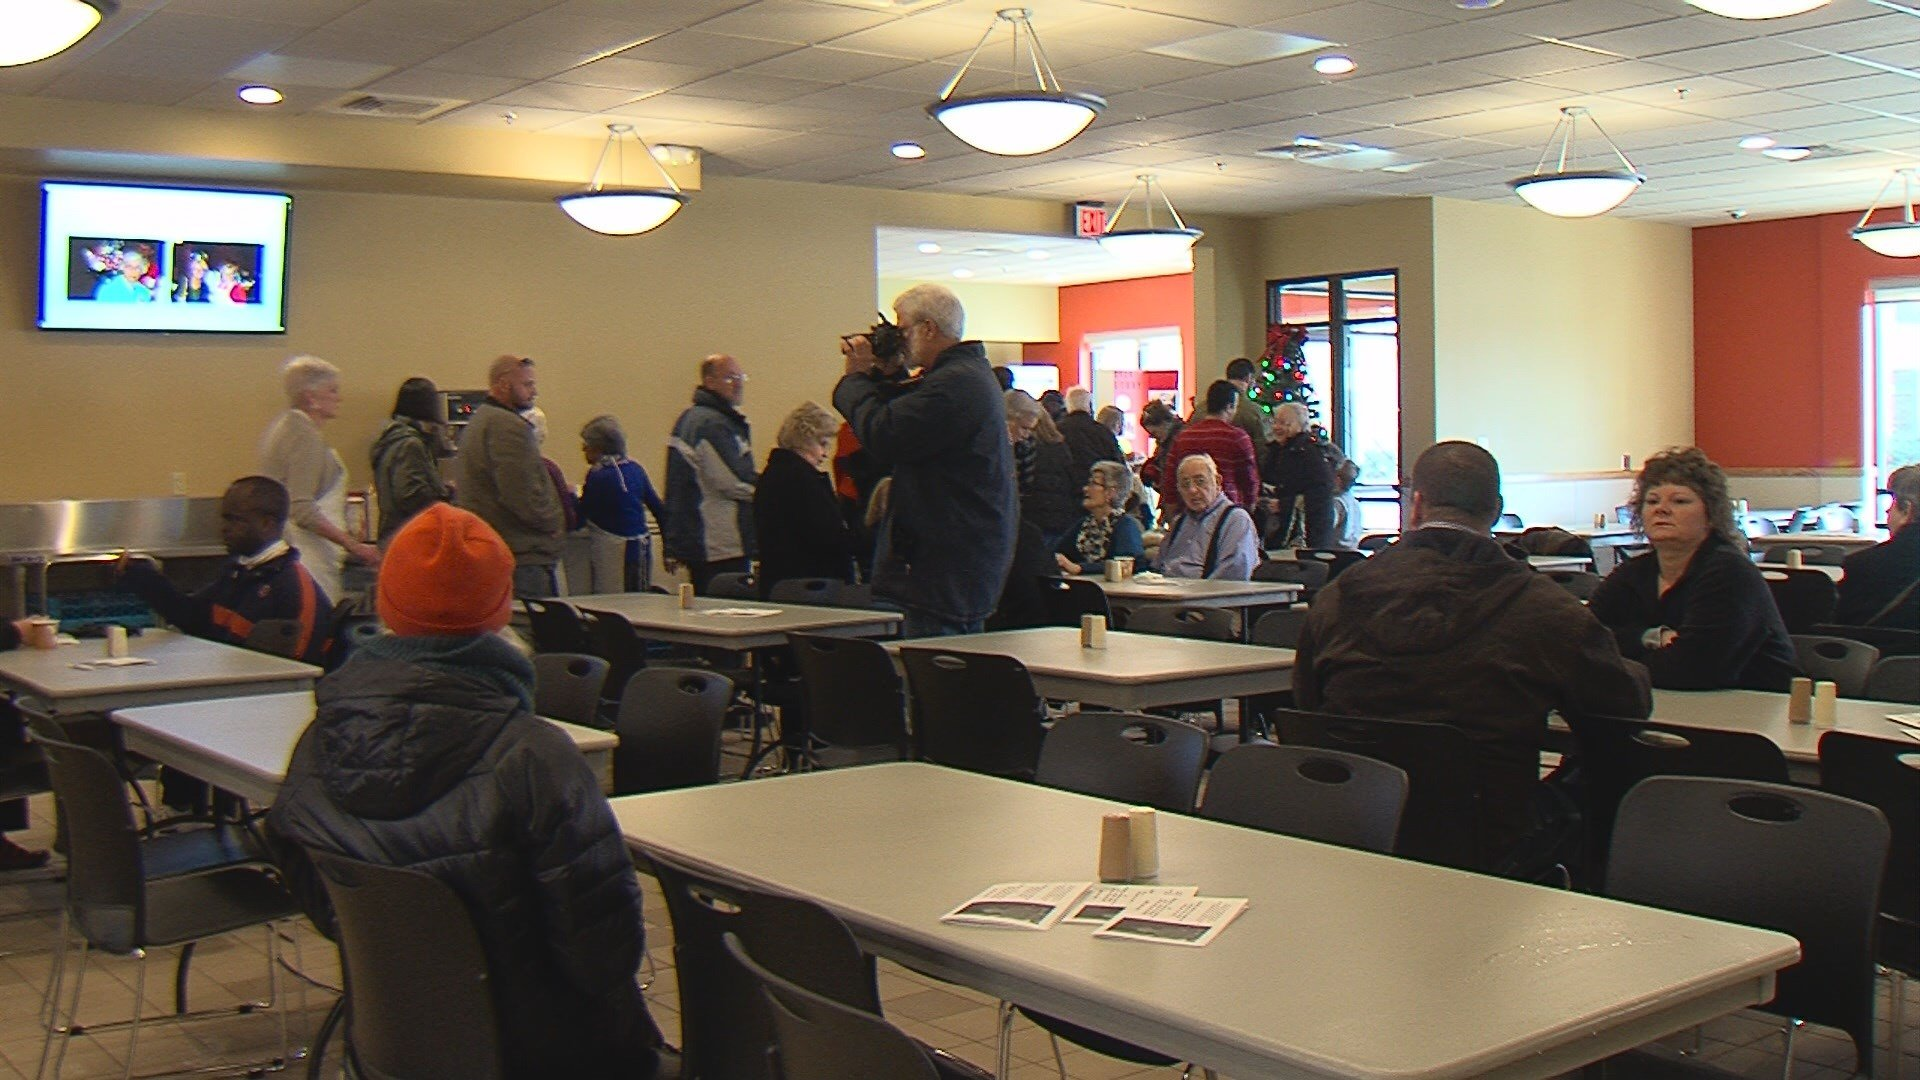 Daily Bread Soup Kitchen Hosts Open House Chicago News